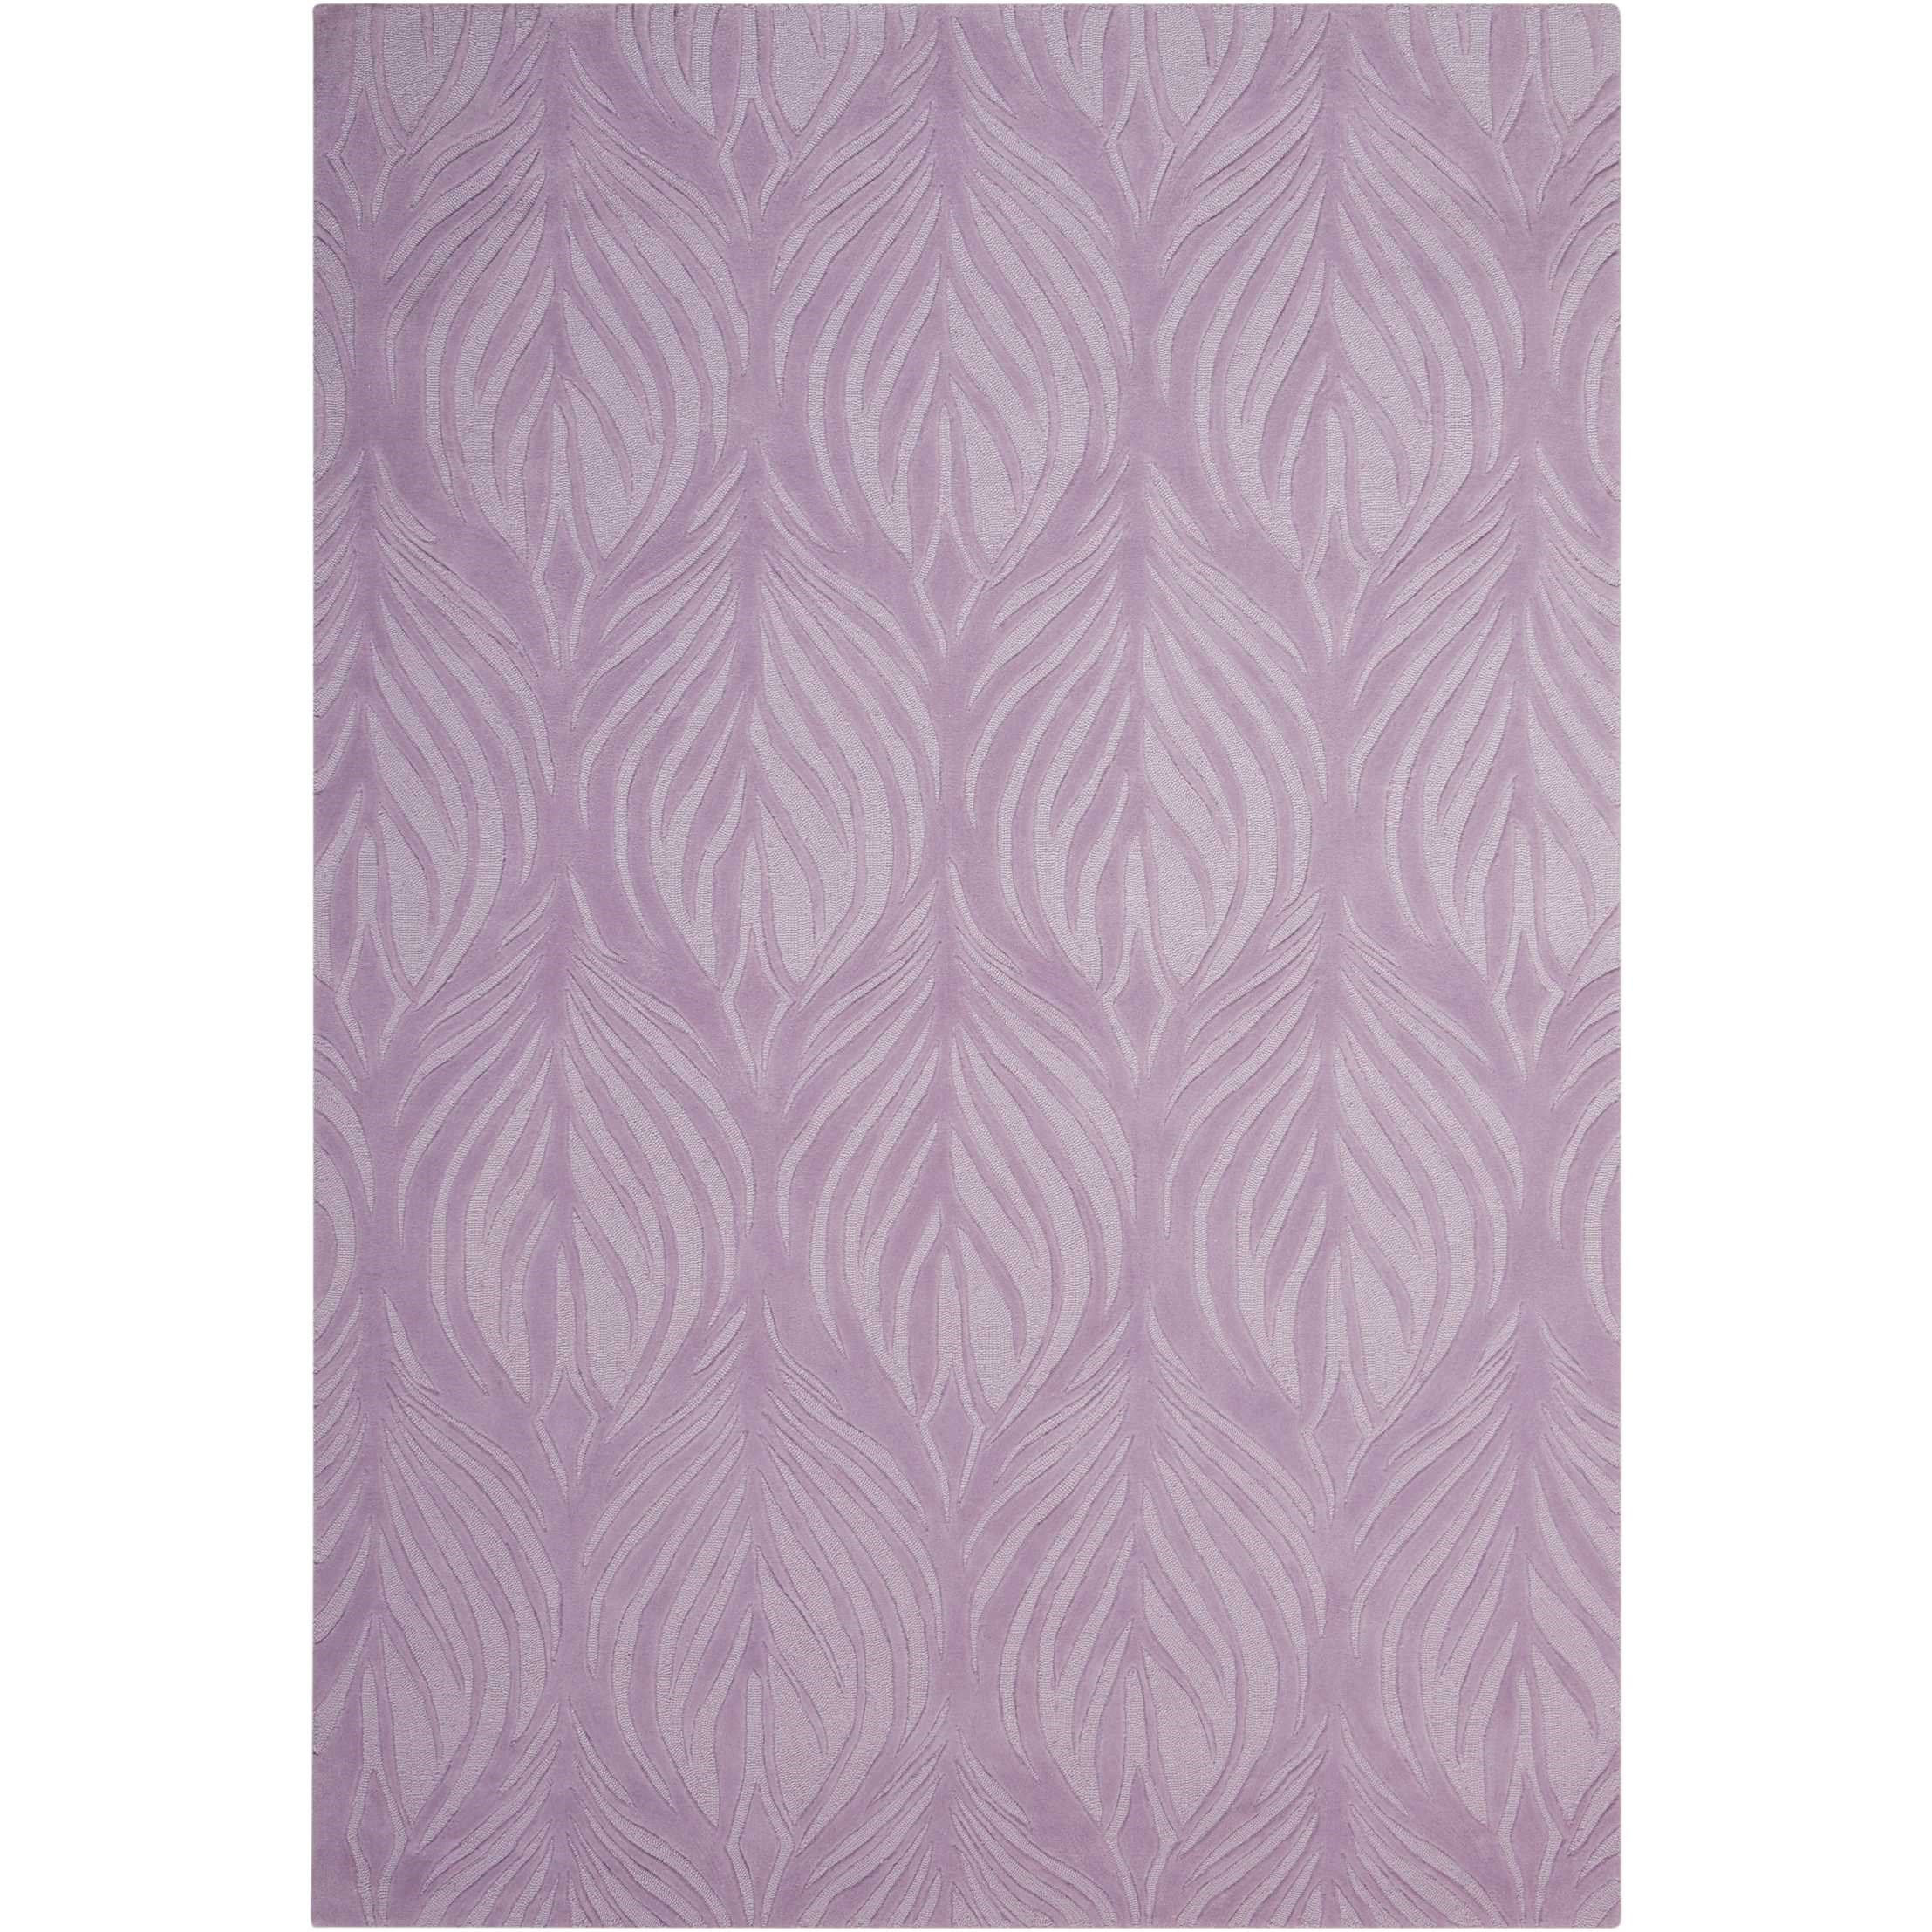 """Contour 3'6"""" x 5'6"""" Lavender Rectangle Rug by Nourison at Home Collections Furniture"""